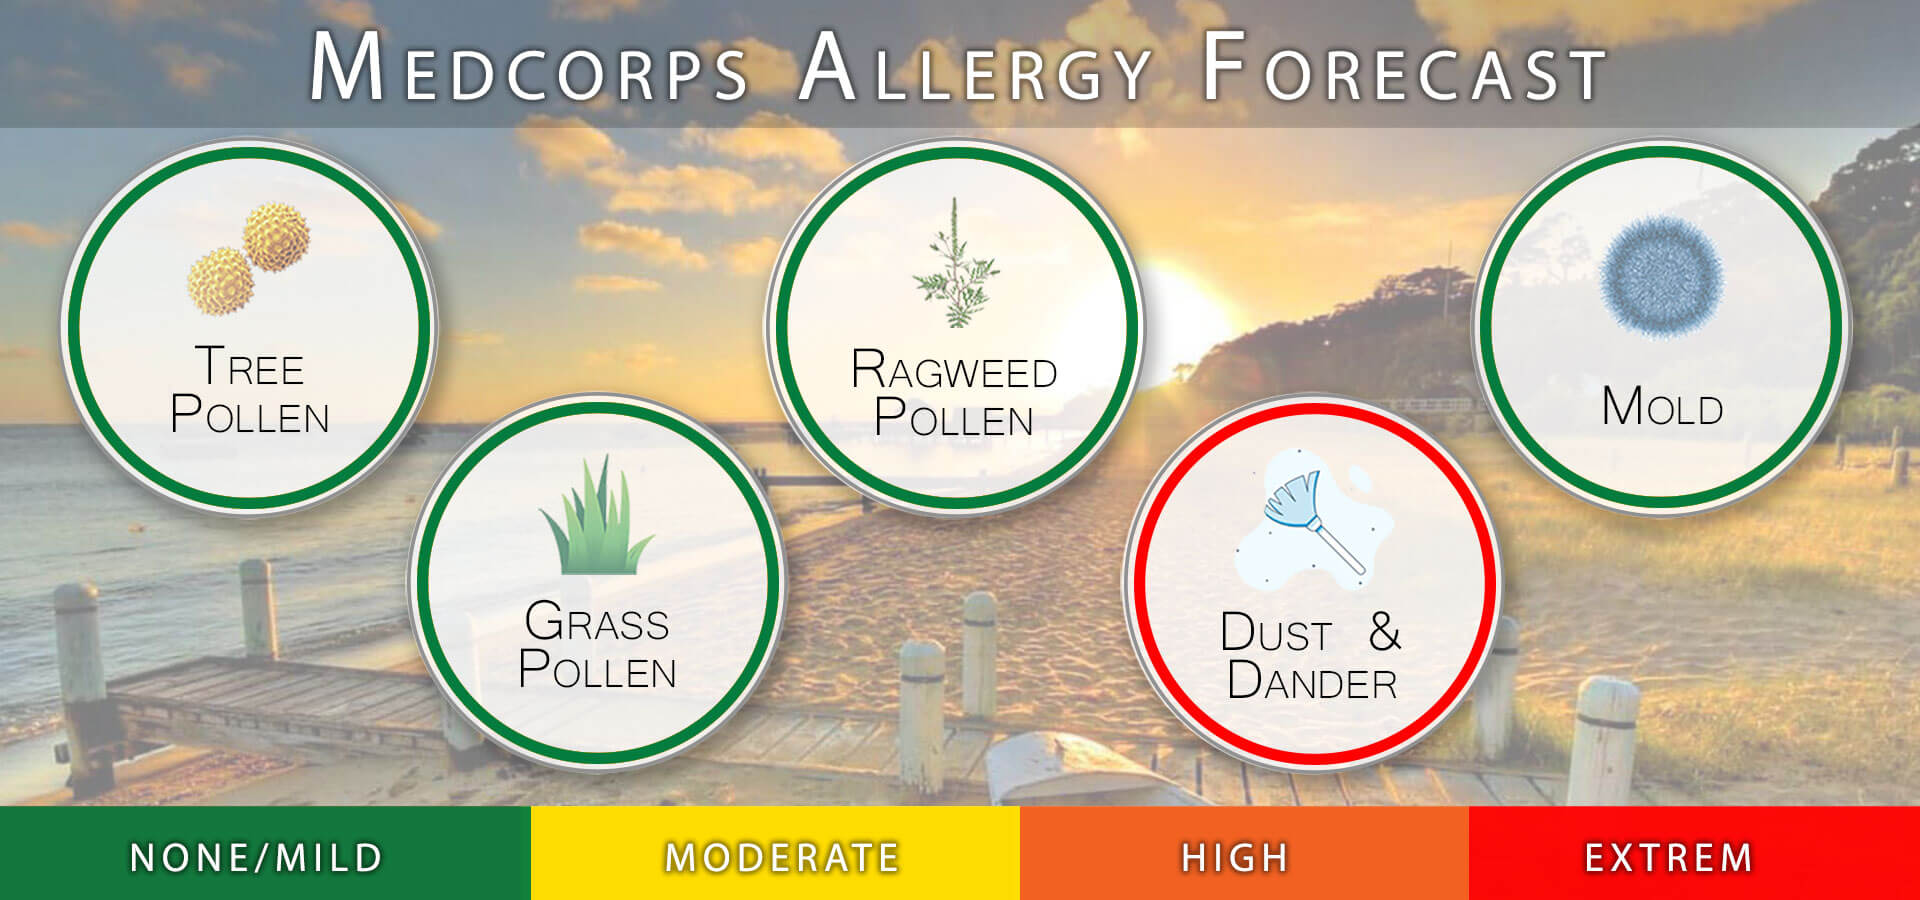 medcorps allergy forecast image